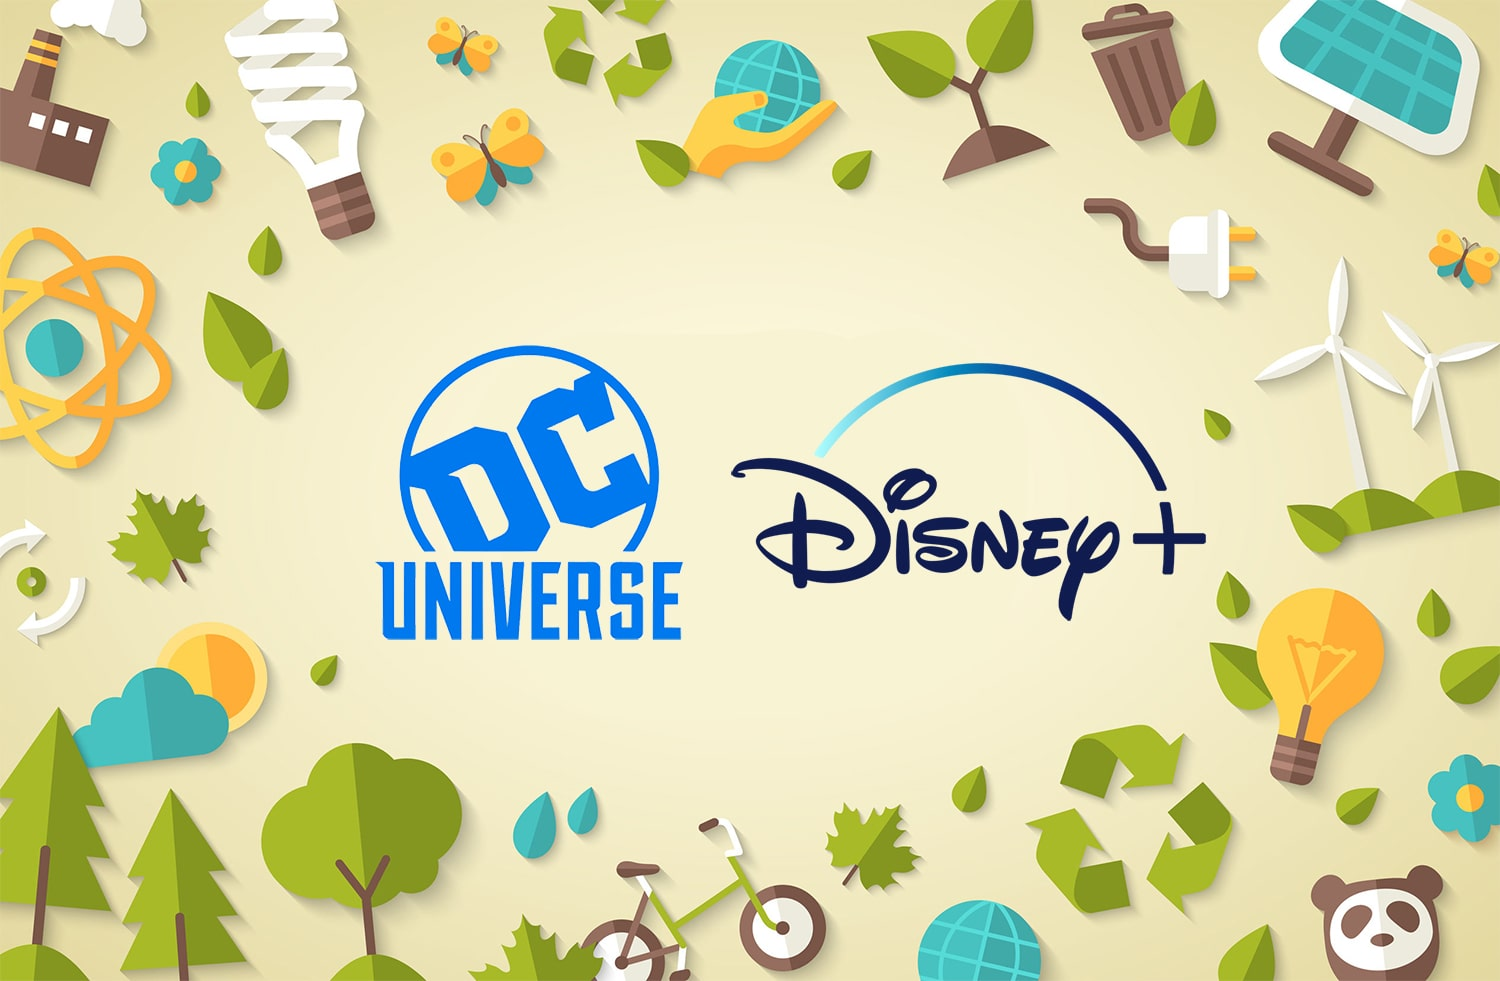 Happy Earth Day: The best way to stream and celebrate with DC Universe and Disney+